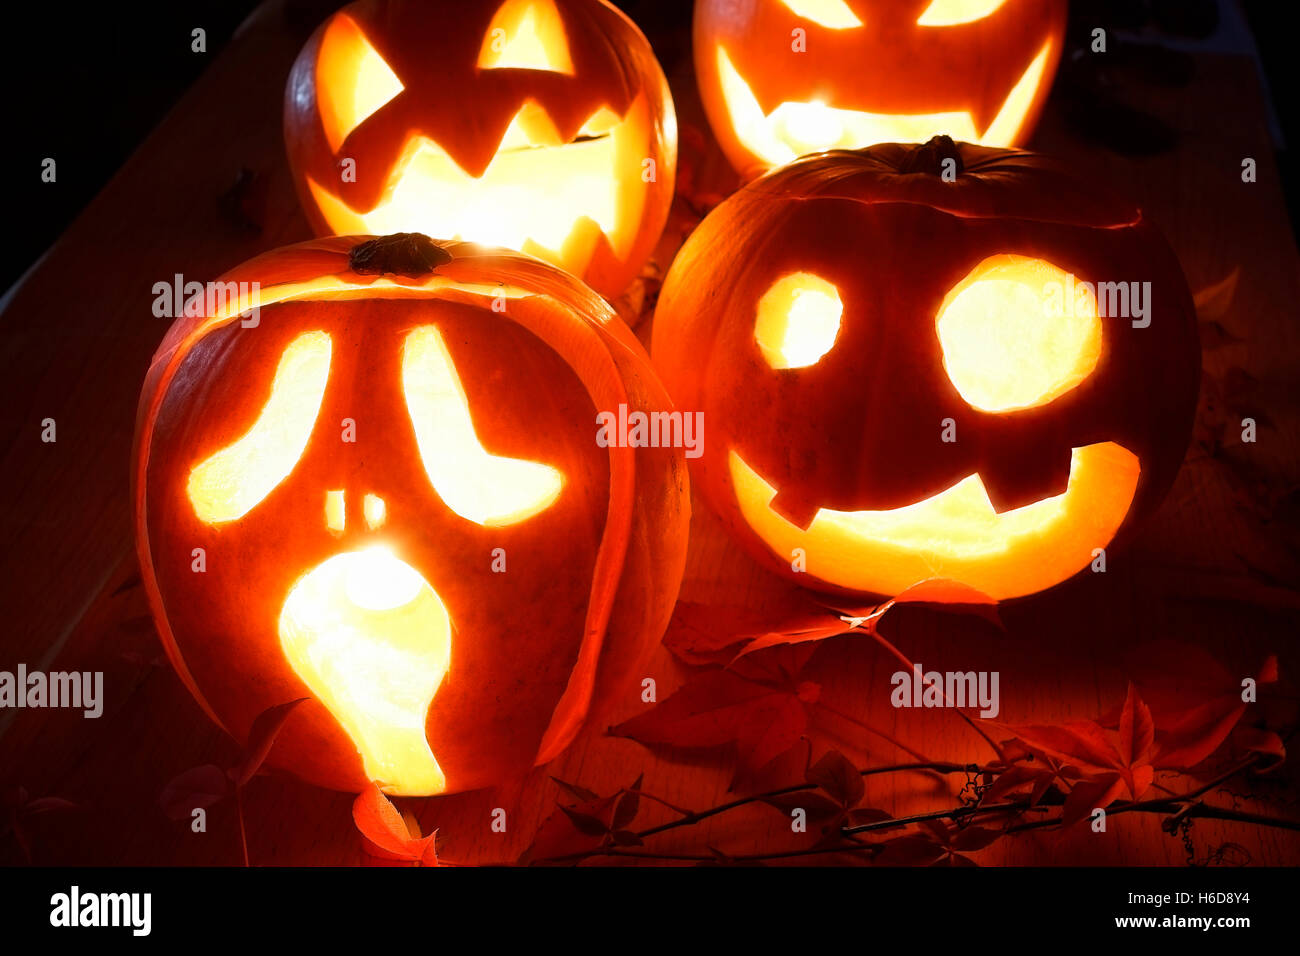 Scary Halloween Pumpkins With Eyes Glowing Inside At Black